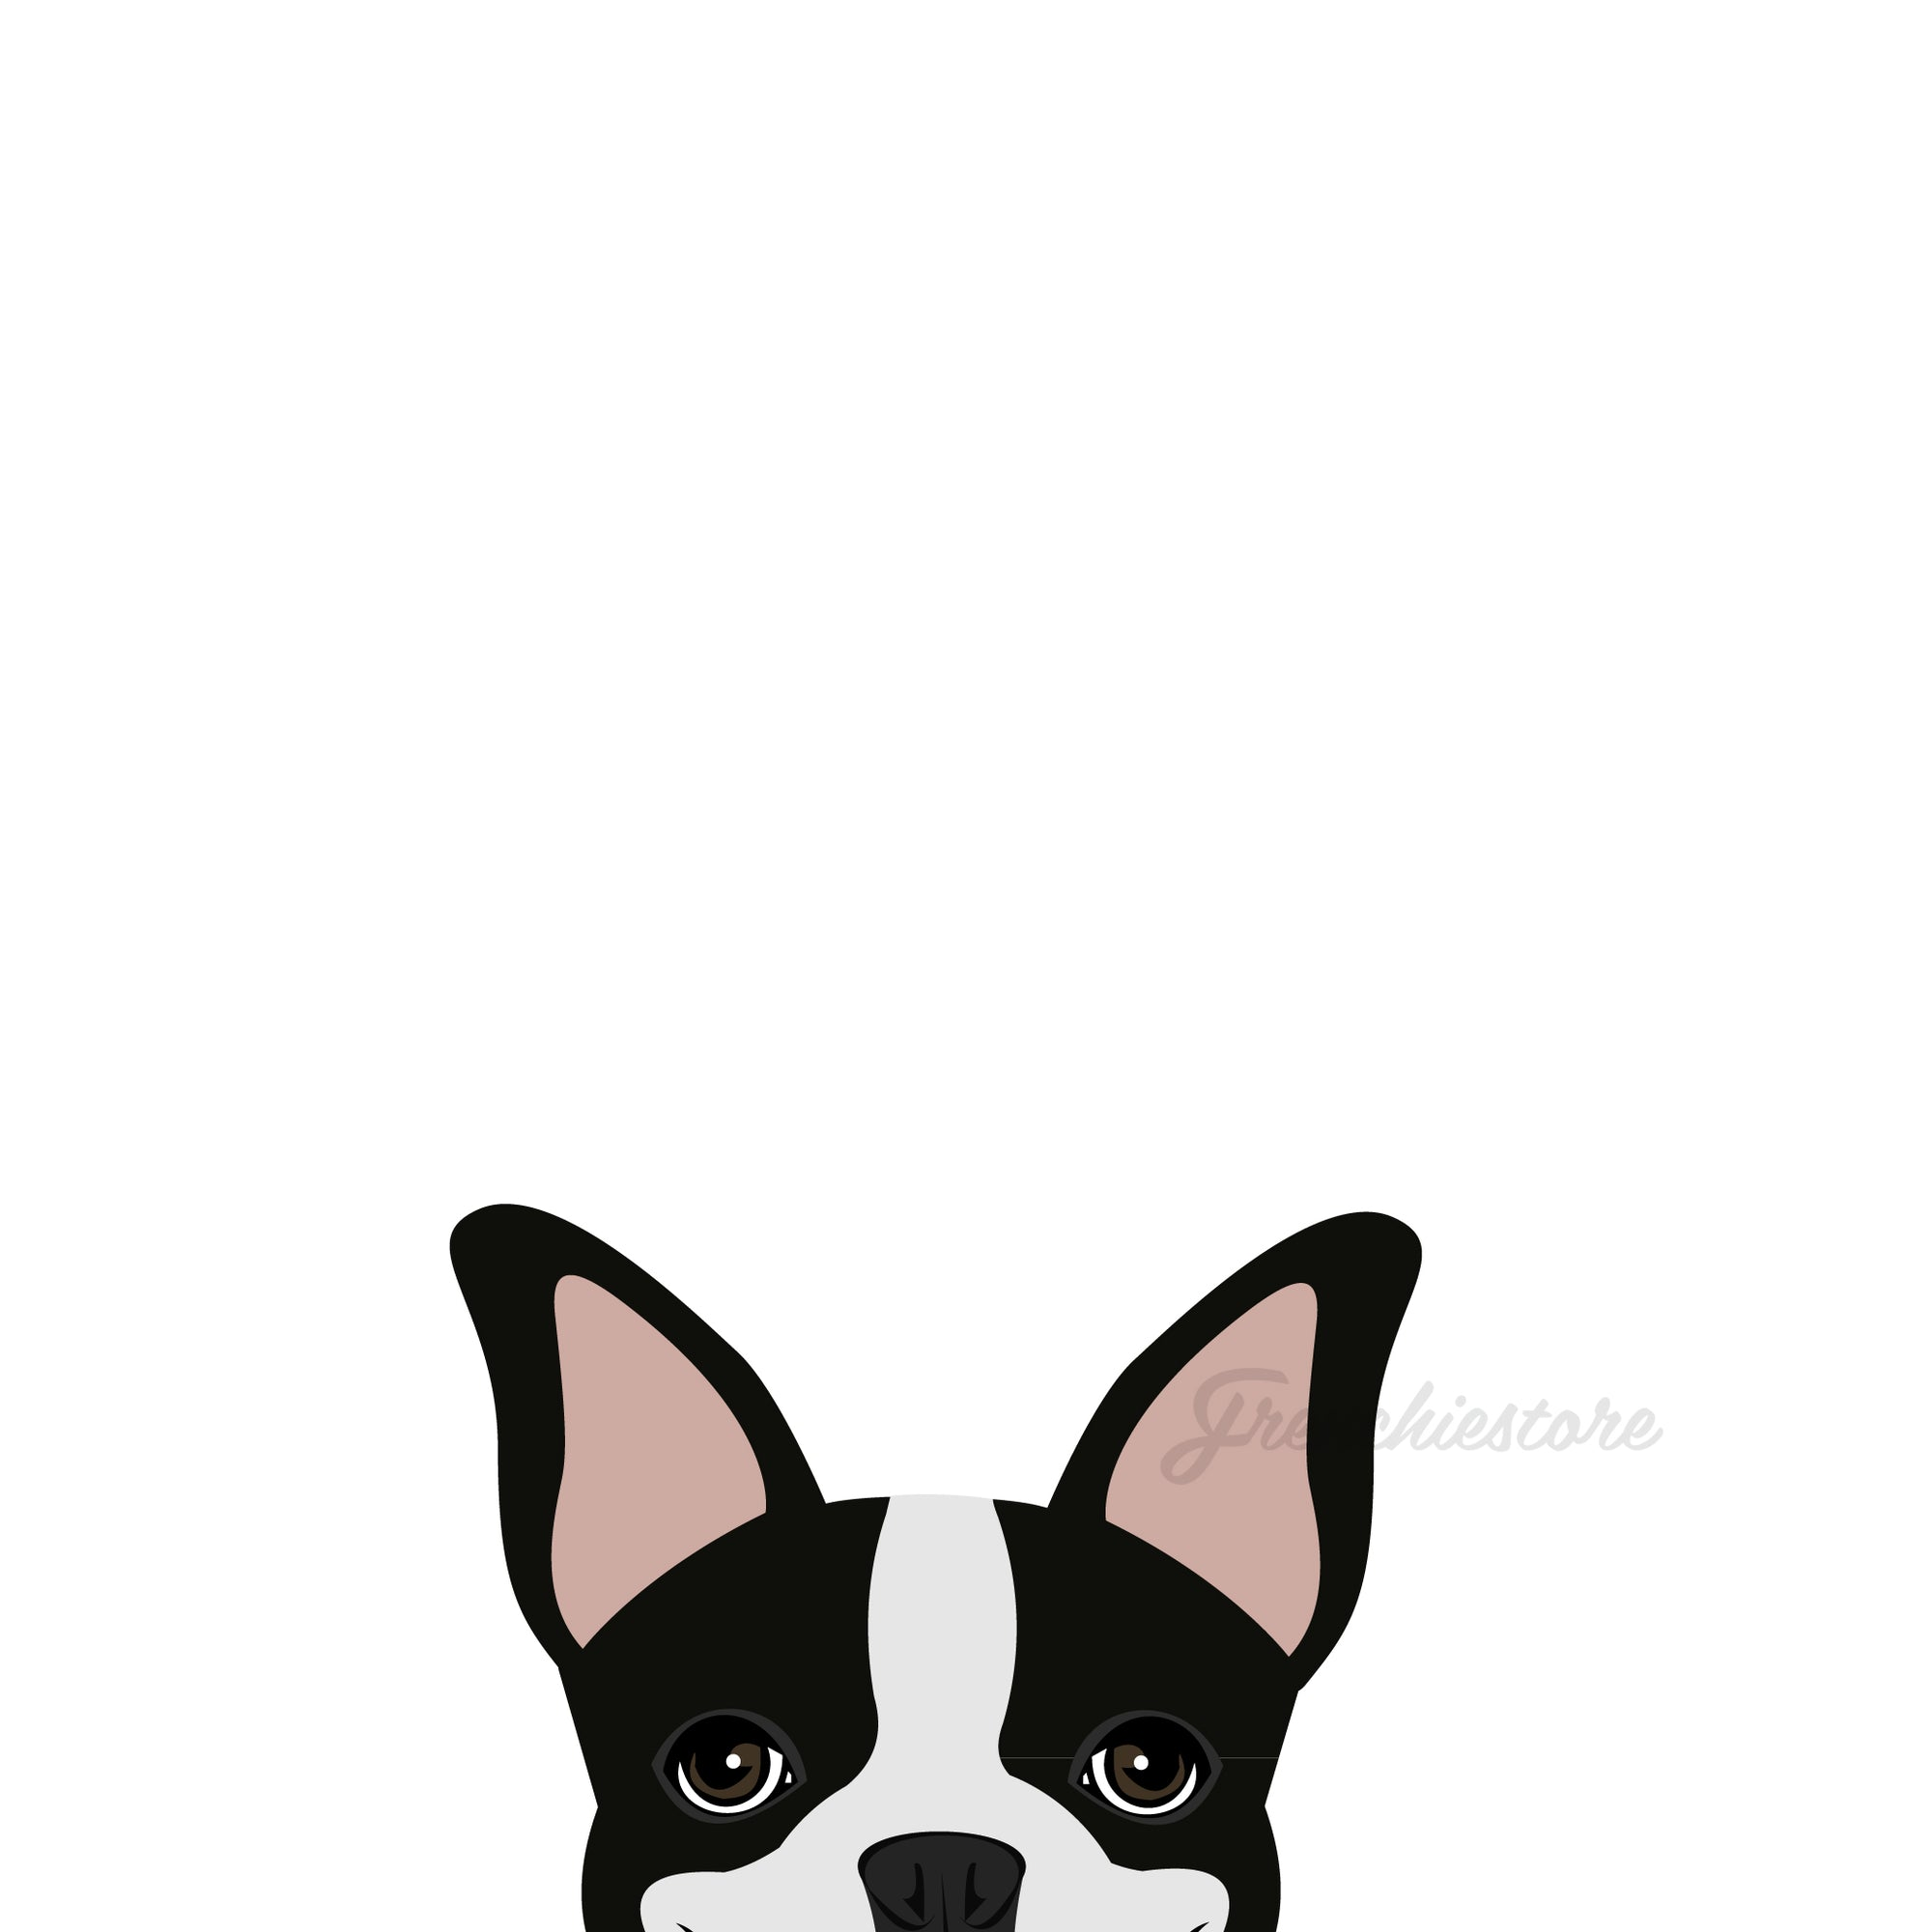 Boston Terrier Dog Sticker | Frenchiestore |  Black Pied Boston Terrier Car Decal